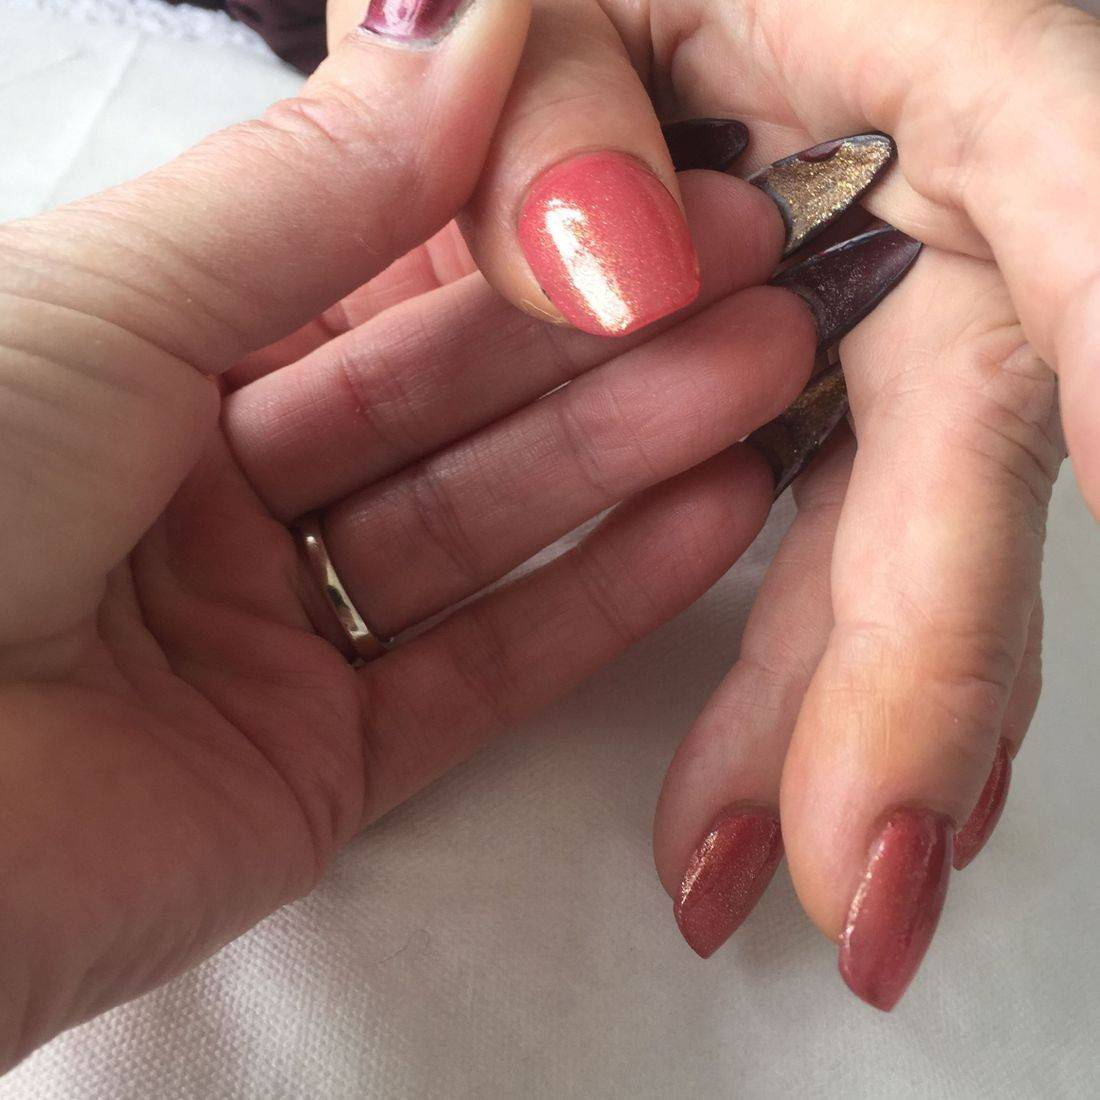 Nails done after attending sculptured nails course